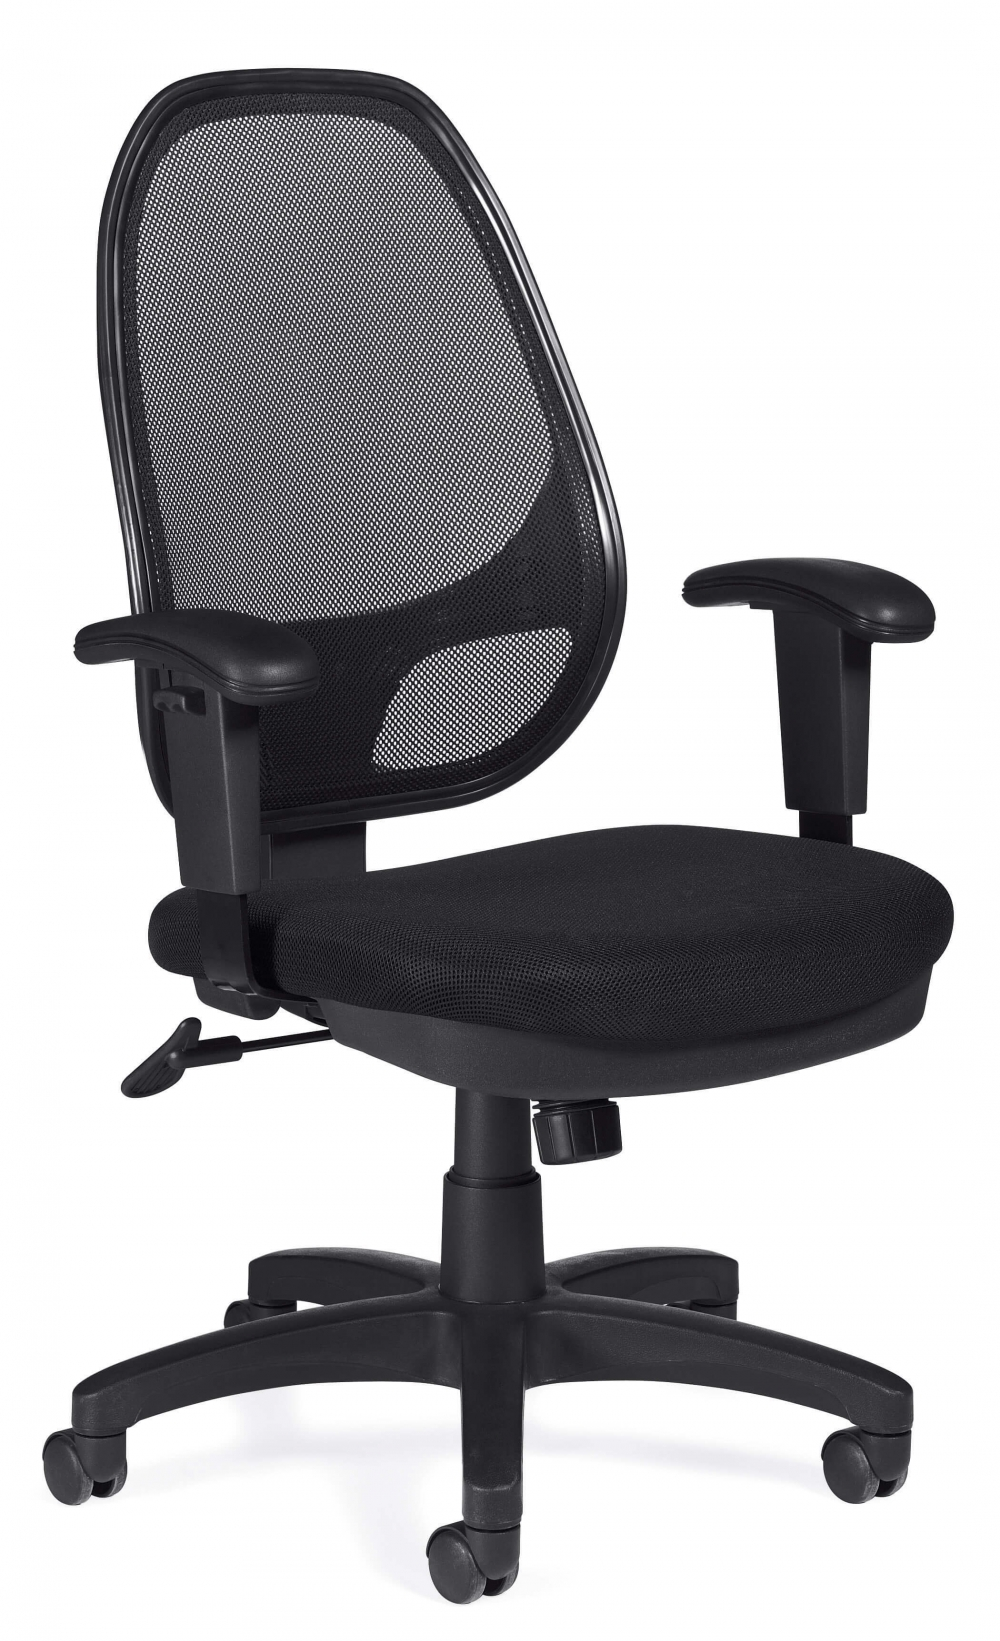 office-furniture-chairs-adjustable-chairs.jpg